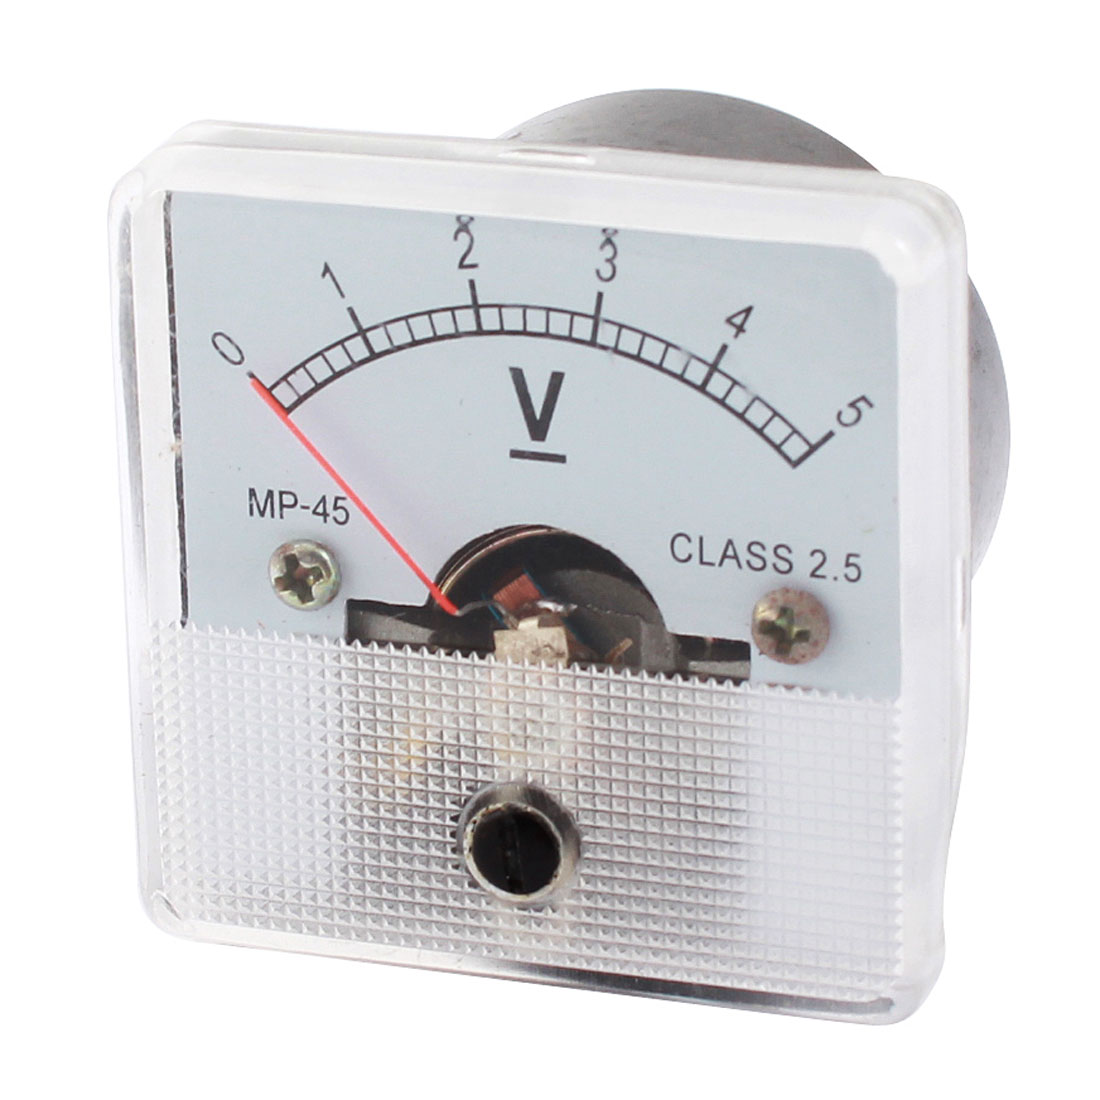 DC 0-5V Class 2.5 Accuracy Square Shaped Plastic Voltage Panel Meter Voltmeter